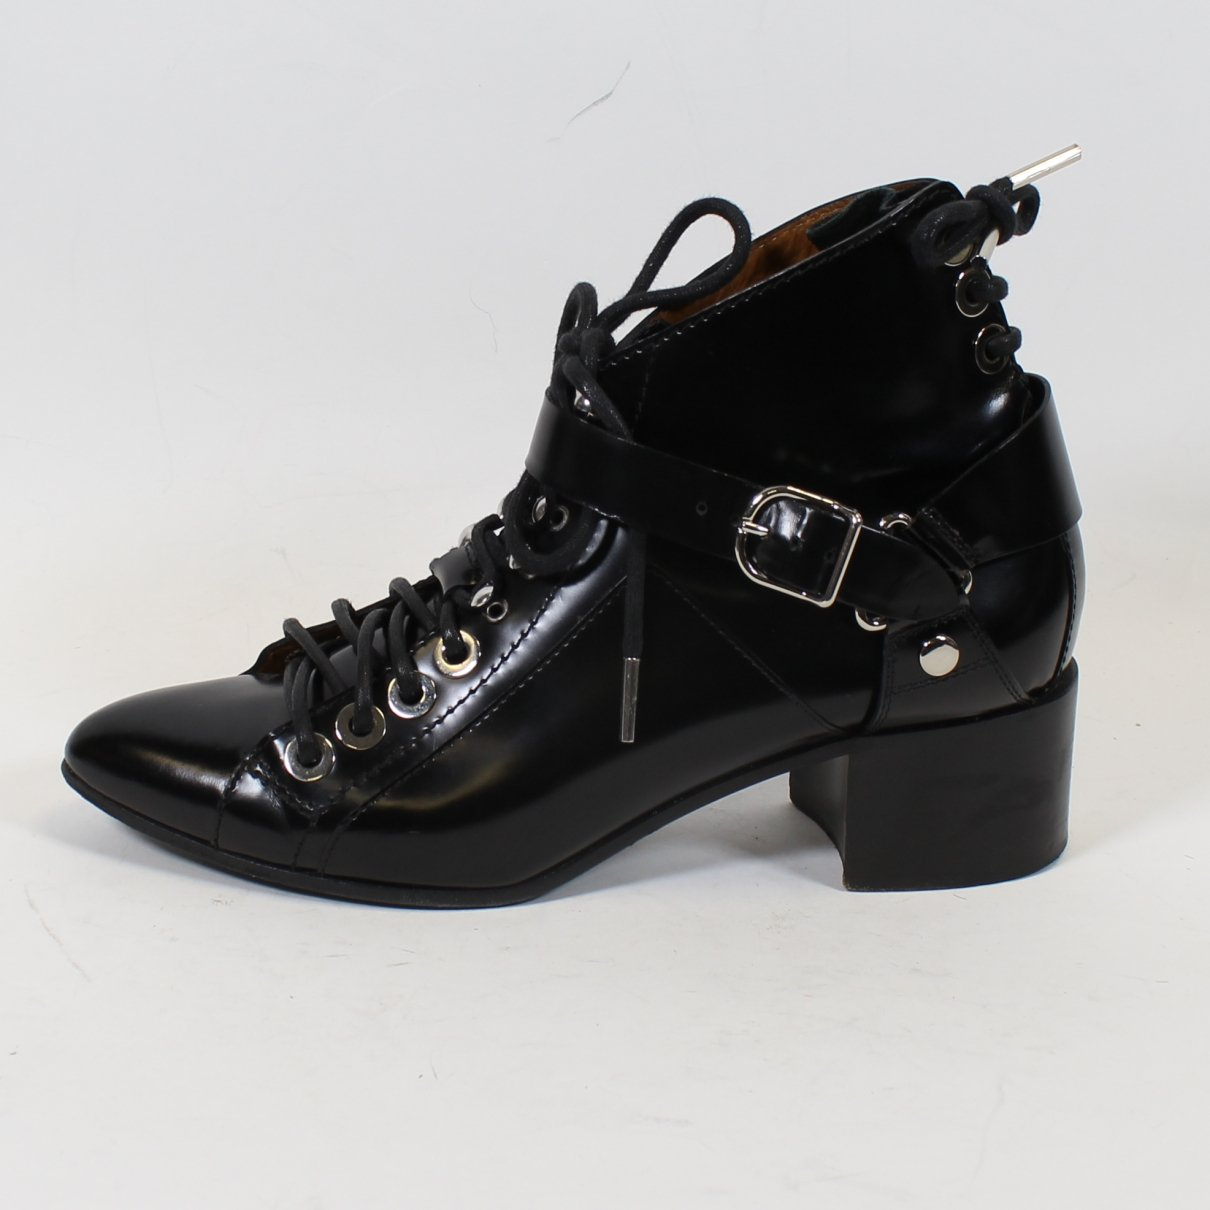 Balenciaga N Black Leather Ankle boots for Women